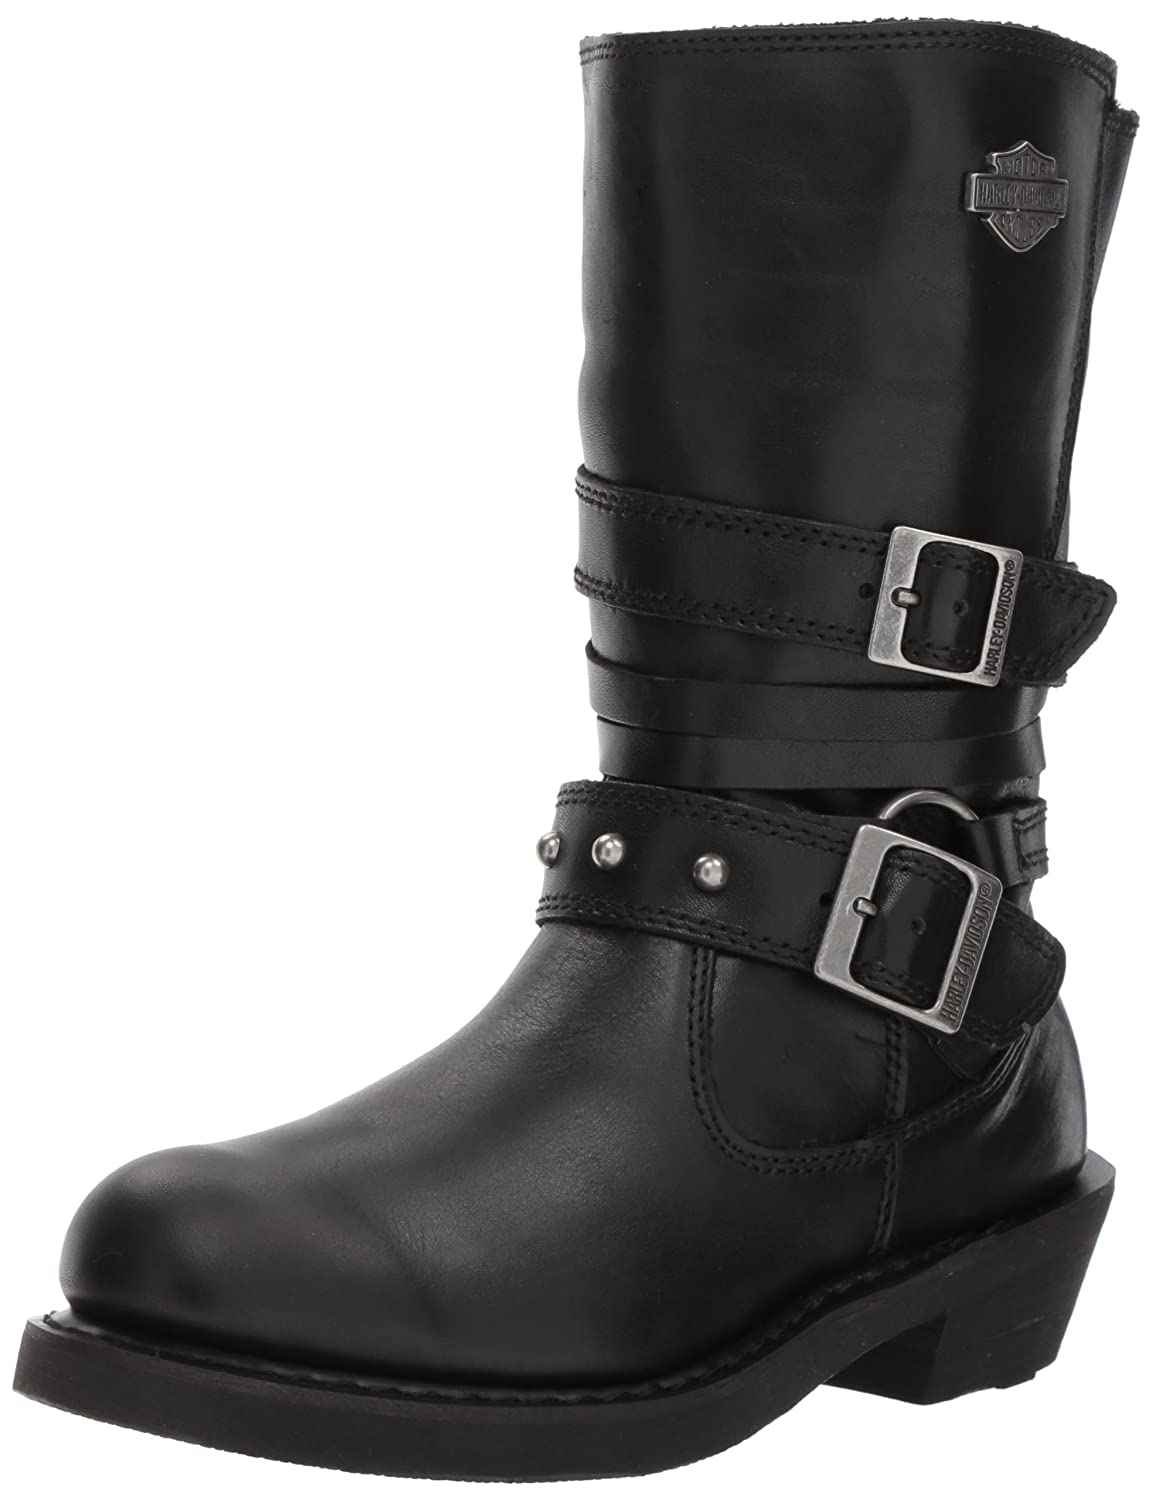 Harley-Davidson Women's Ardwick Motorcycle Boot B072NZ71WY 6 B(M) US|Black